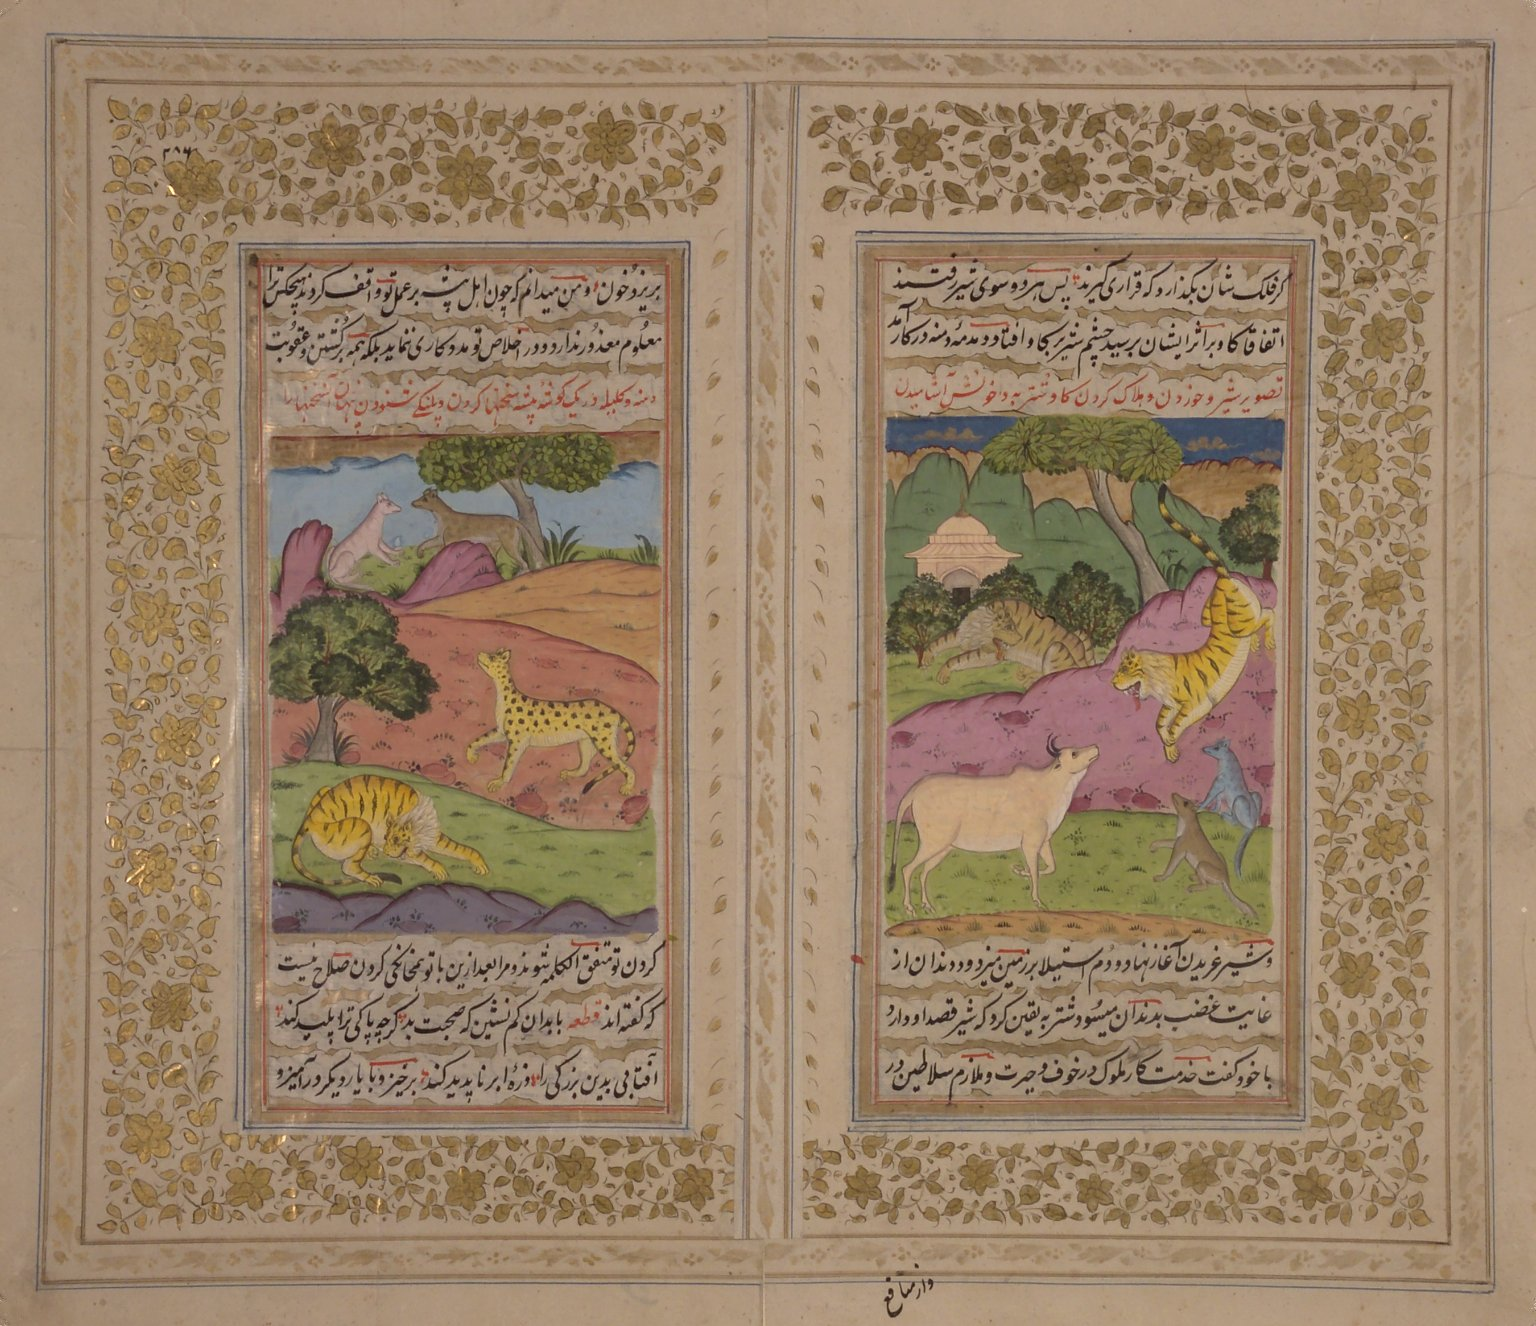 Brooklyn Museum: Miniature Painting from a Dispersed Kalila wa Dimna Manuscript